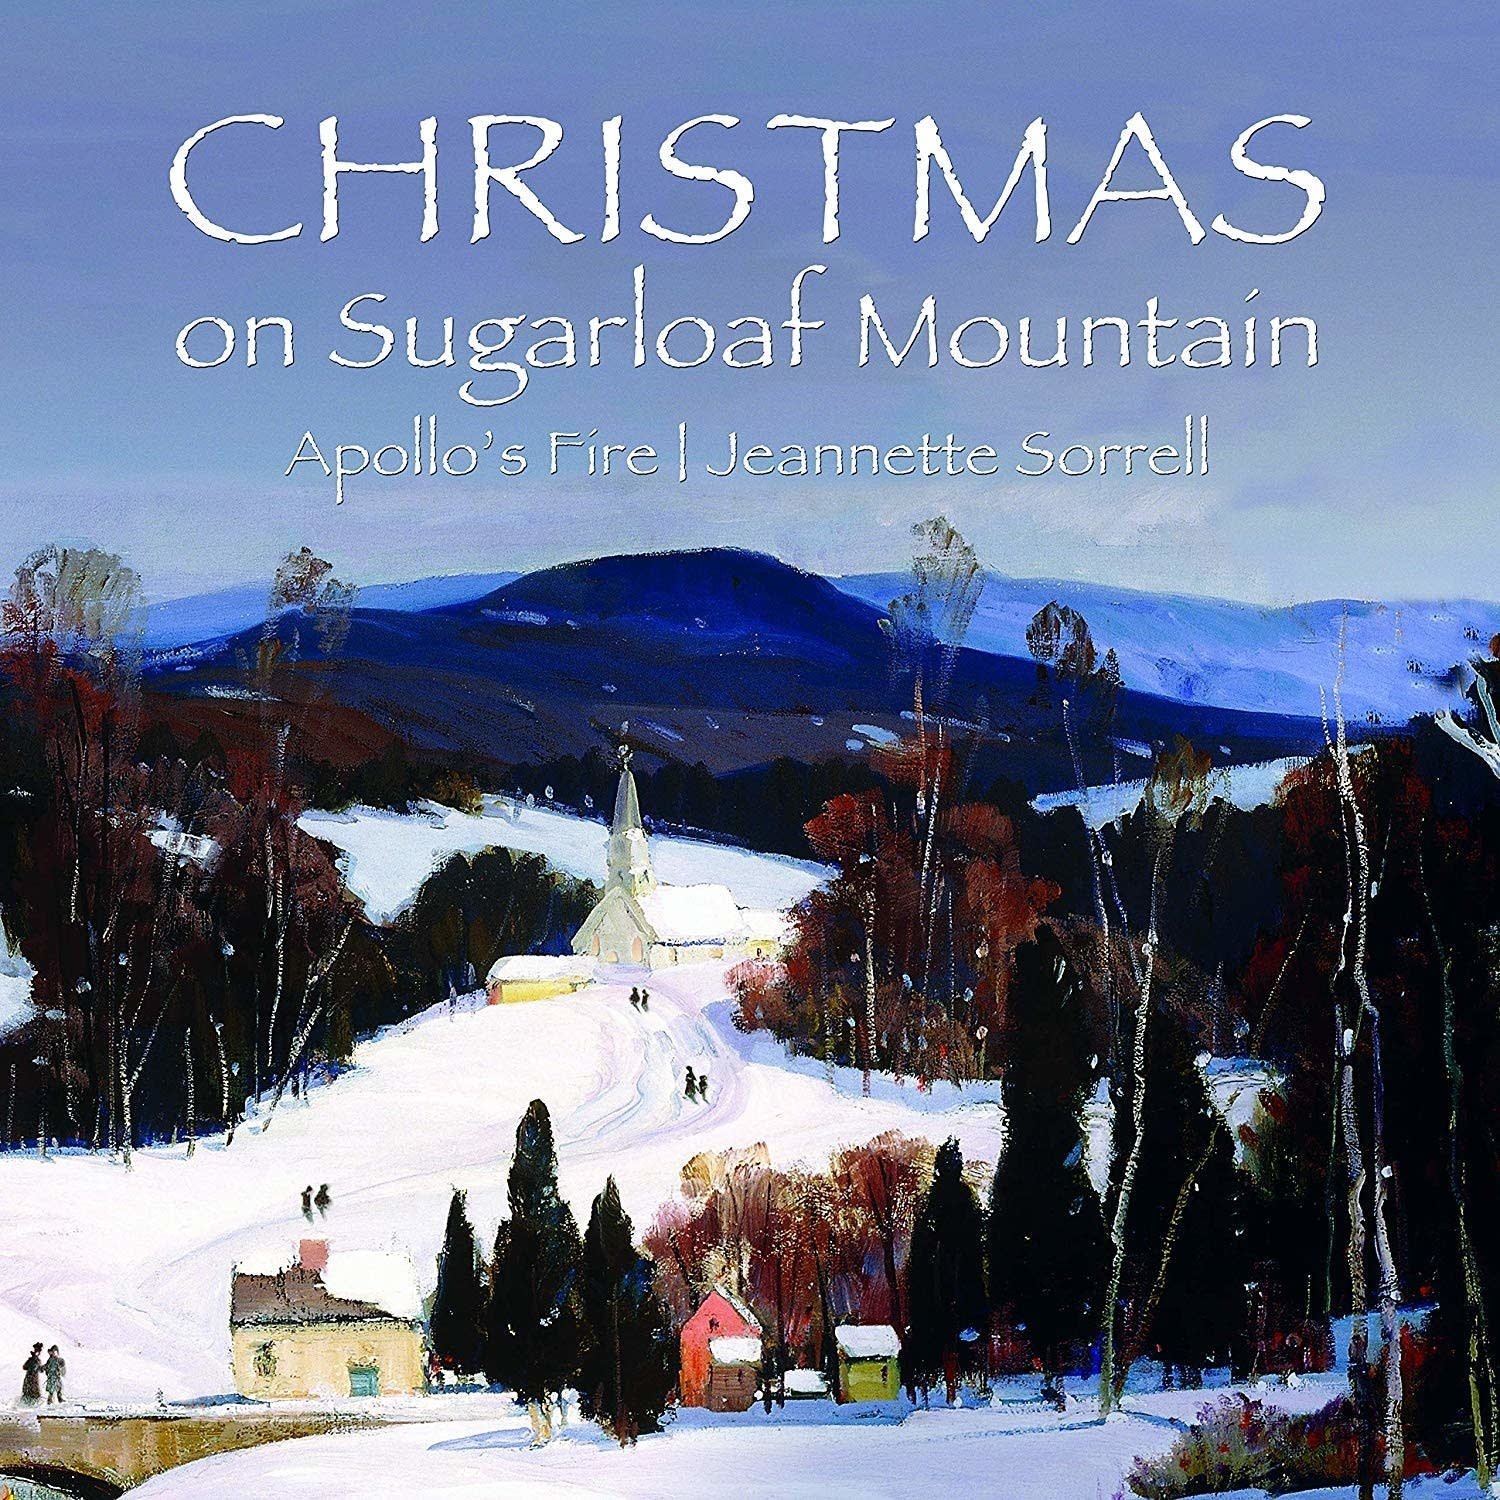 Apollo's Fire with Jeannette Sorrell: 'Christmas on Sugarloaf Mountain'